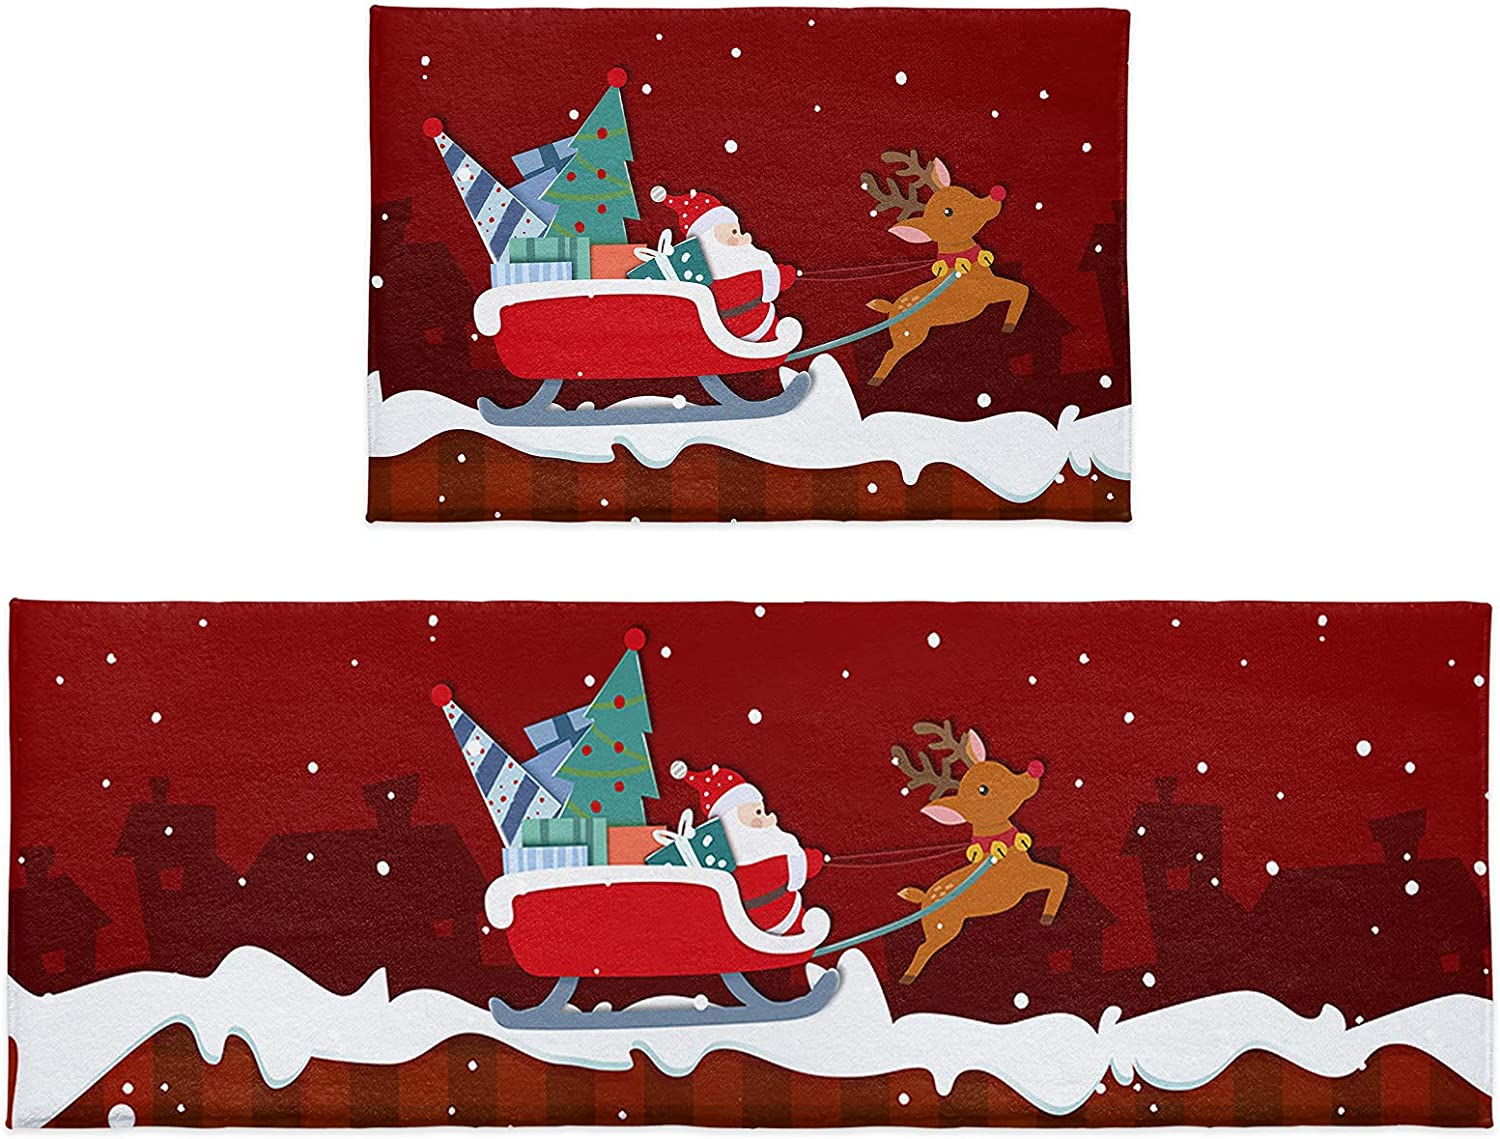 Cloud Dream Our shop most popular Home Kitchen Max 80% OFF Rug Sets 2 Tree Sa Piece Deer Christmas